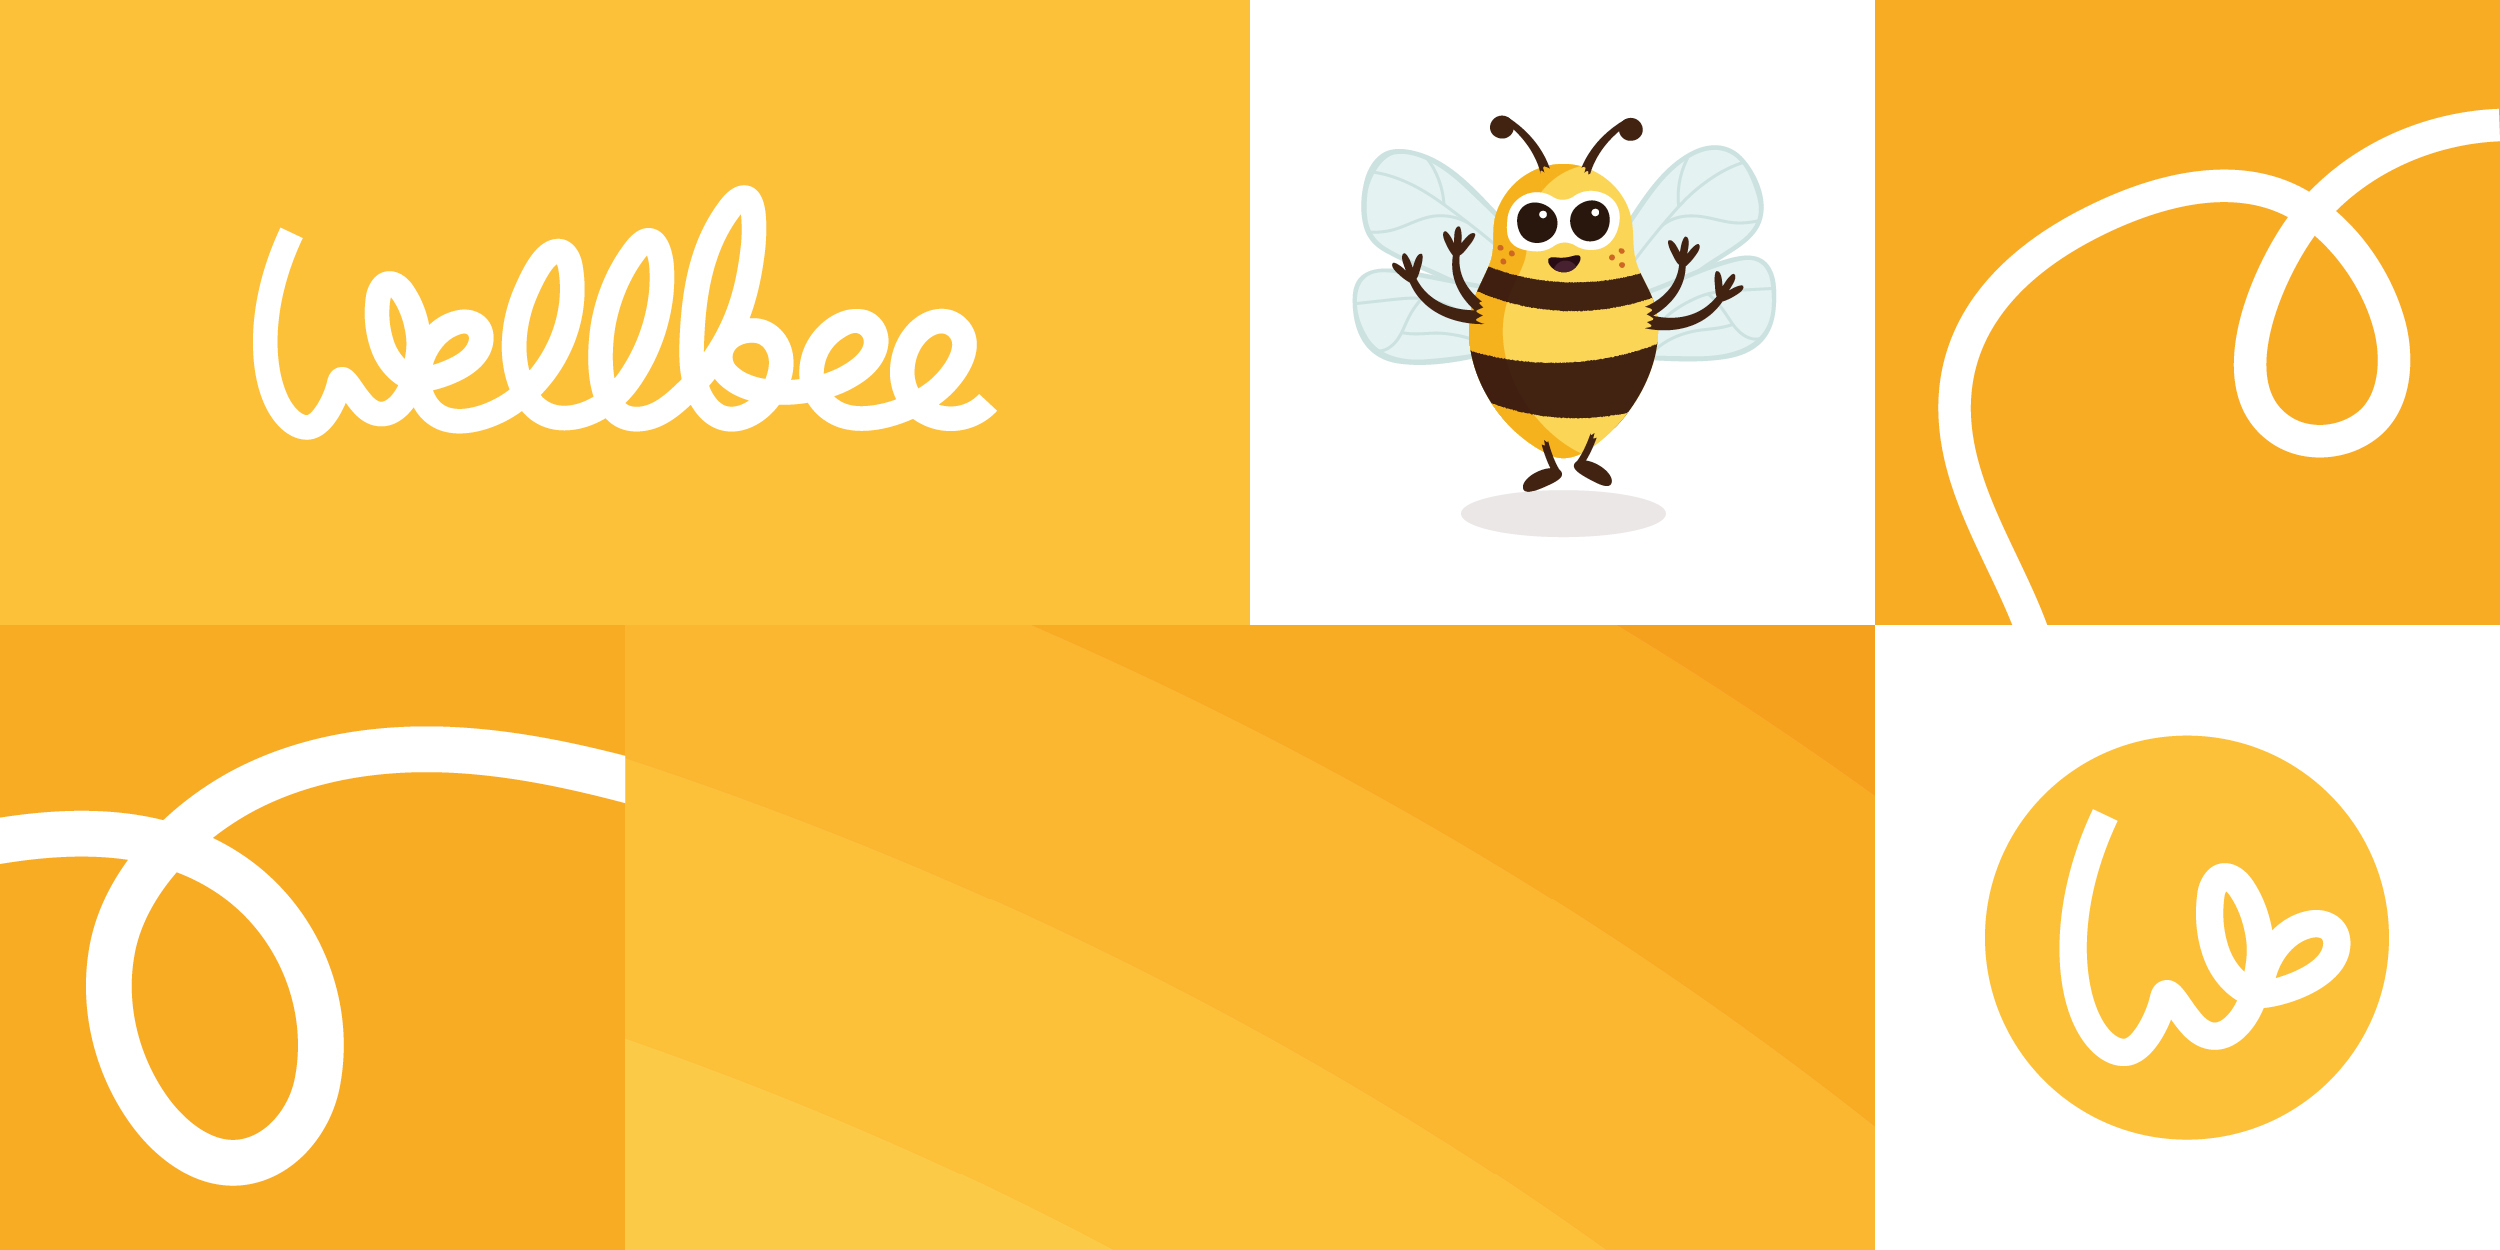 Wellbee brand design by Ben Clark Design